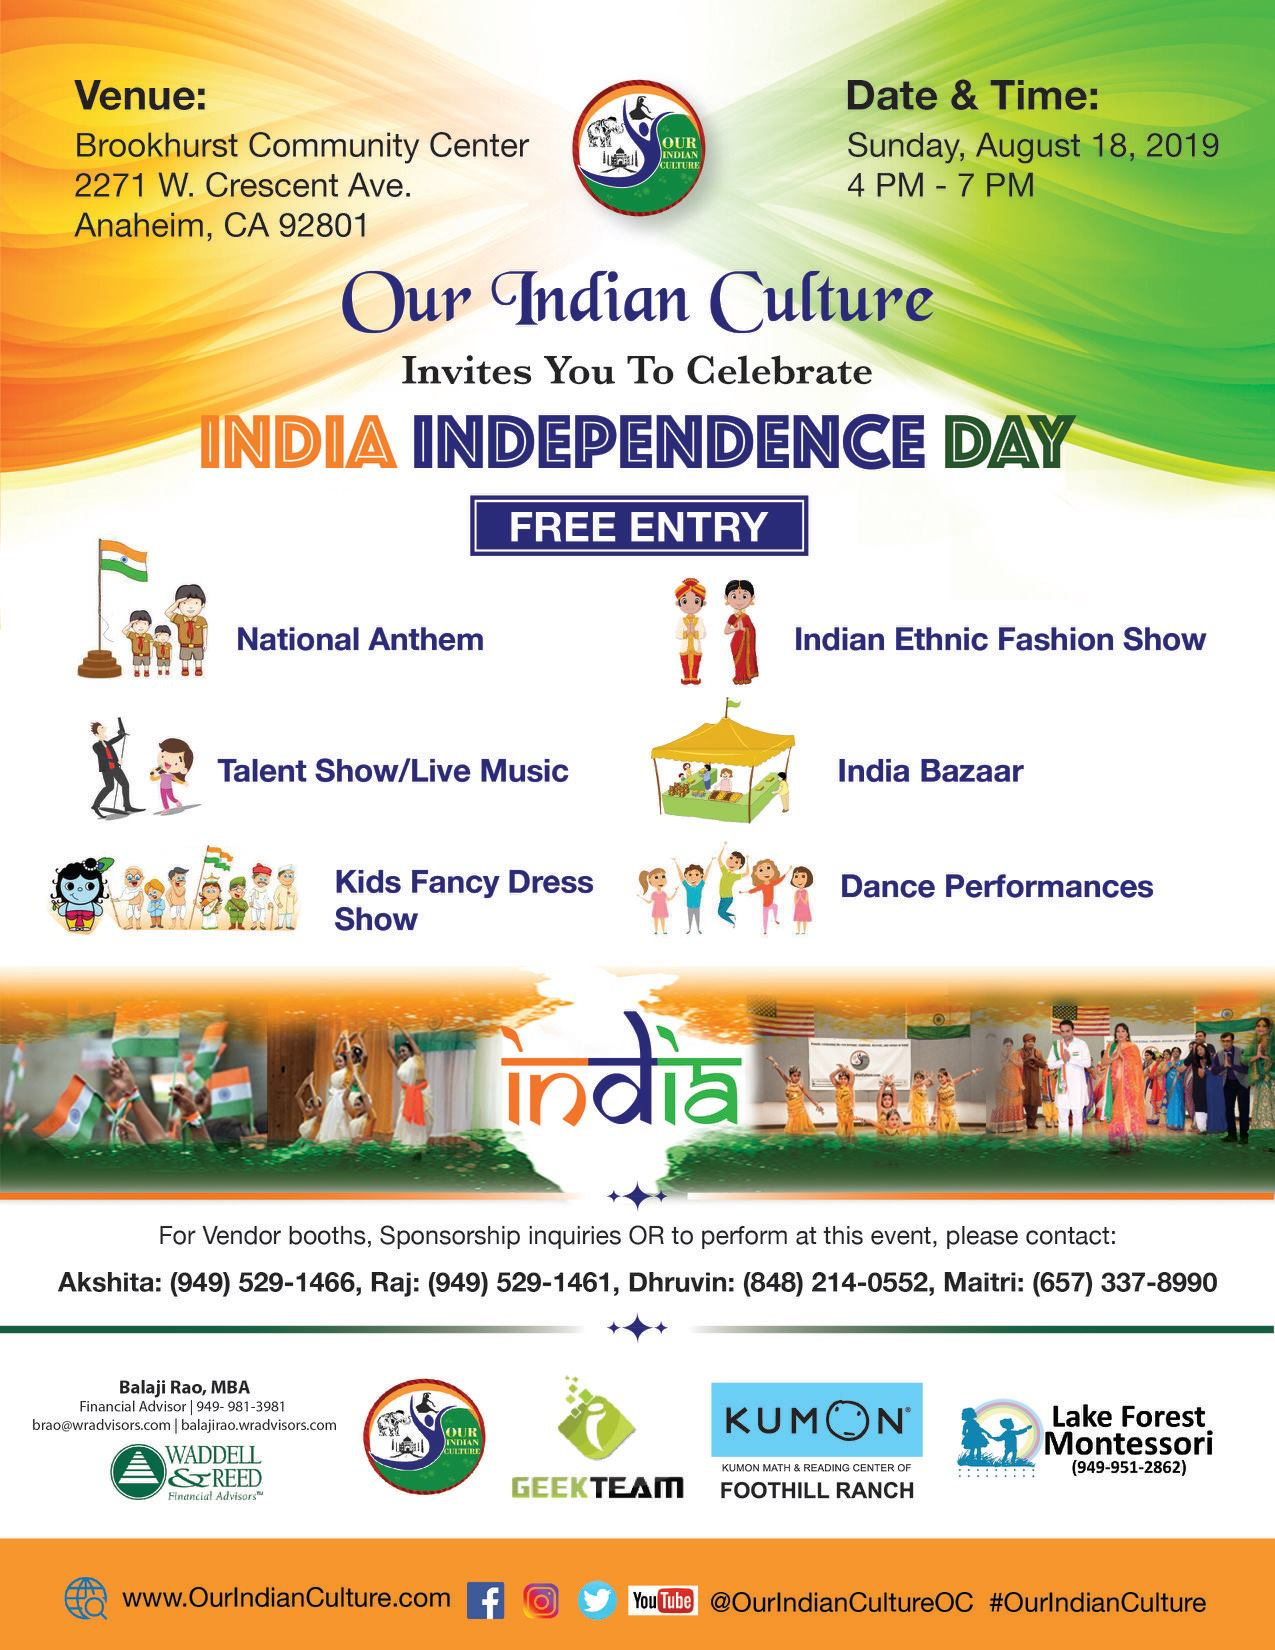 India Independence Day Celebration Event Anaheim